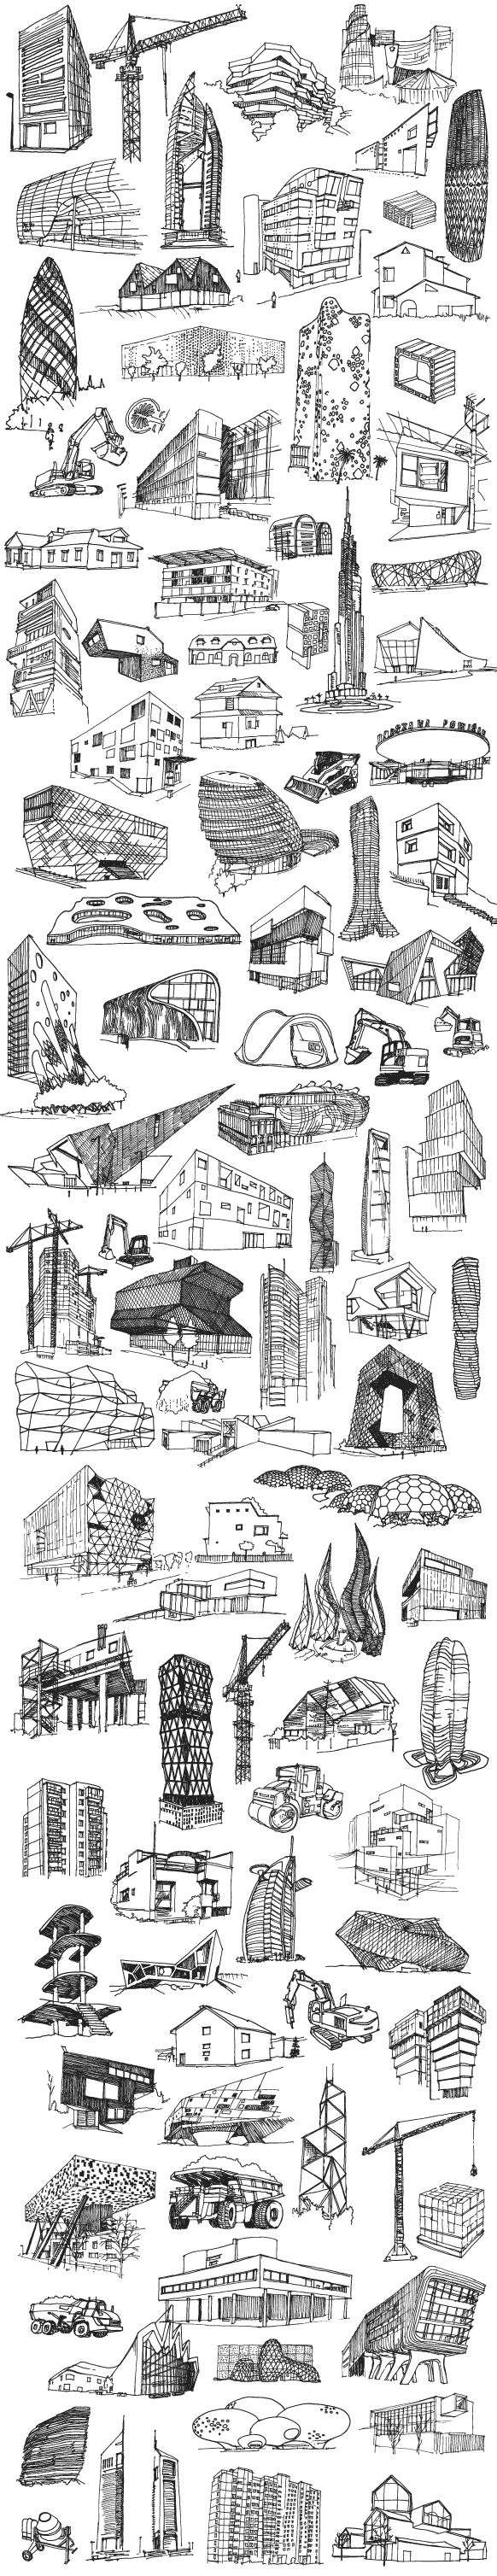 Poster commisioned by Fundacja Bęc Zmiana regarding present/future architectural problems and theories. Over 100 drawings of contemporary, futuristic, modern and casual, unfinished buildings, construction machines and cranes formed a typology of today's c…